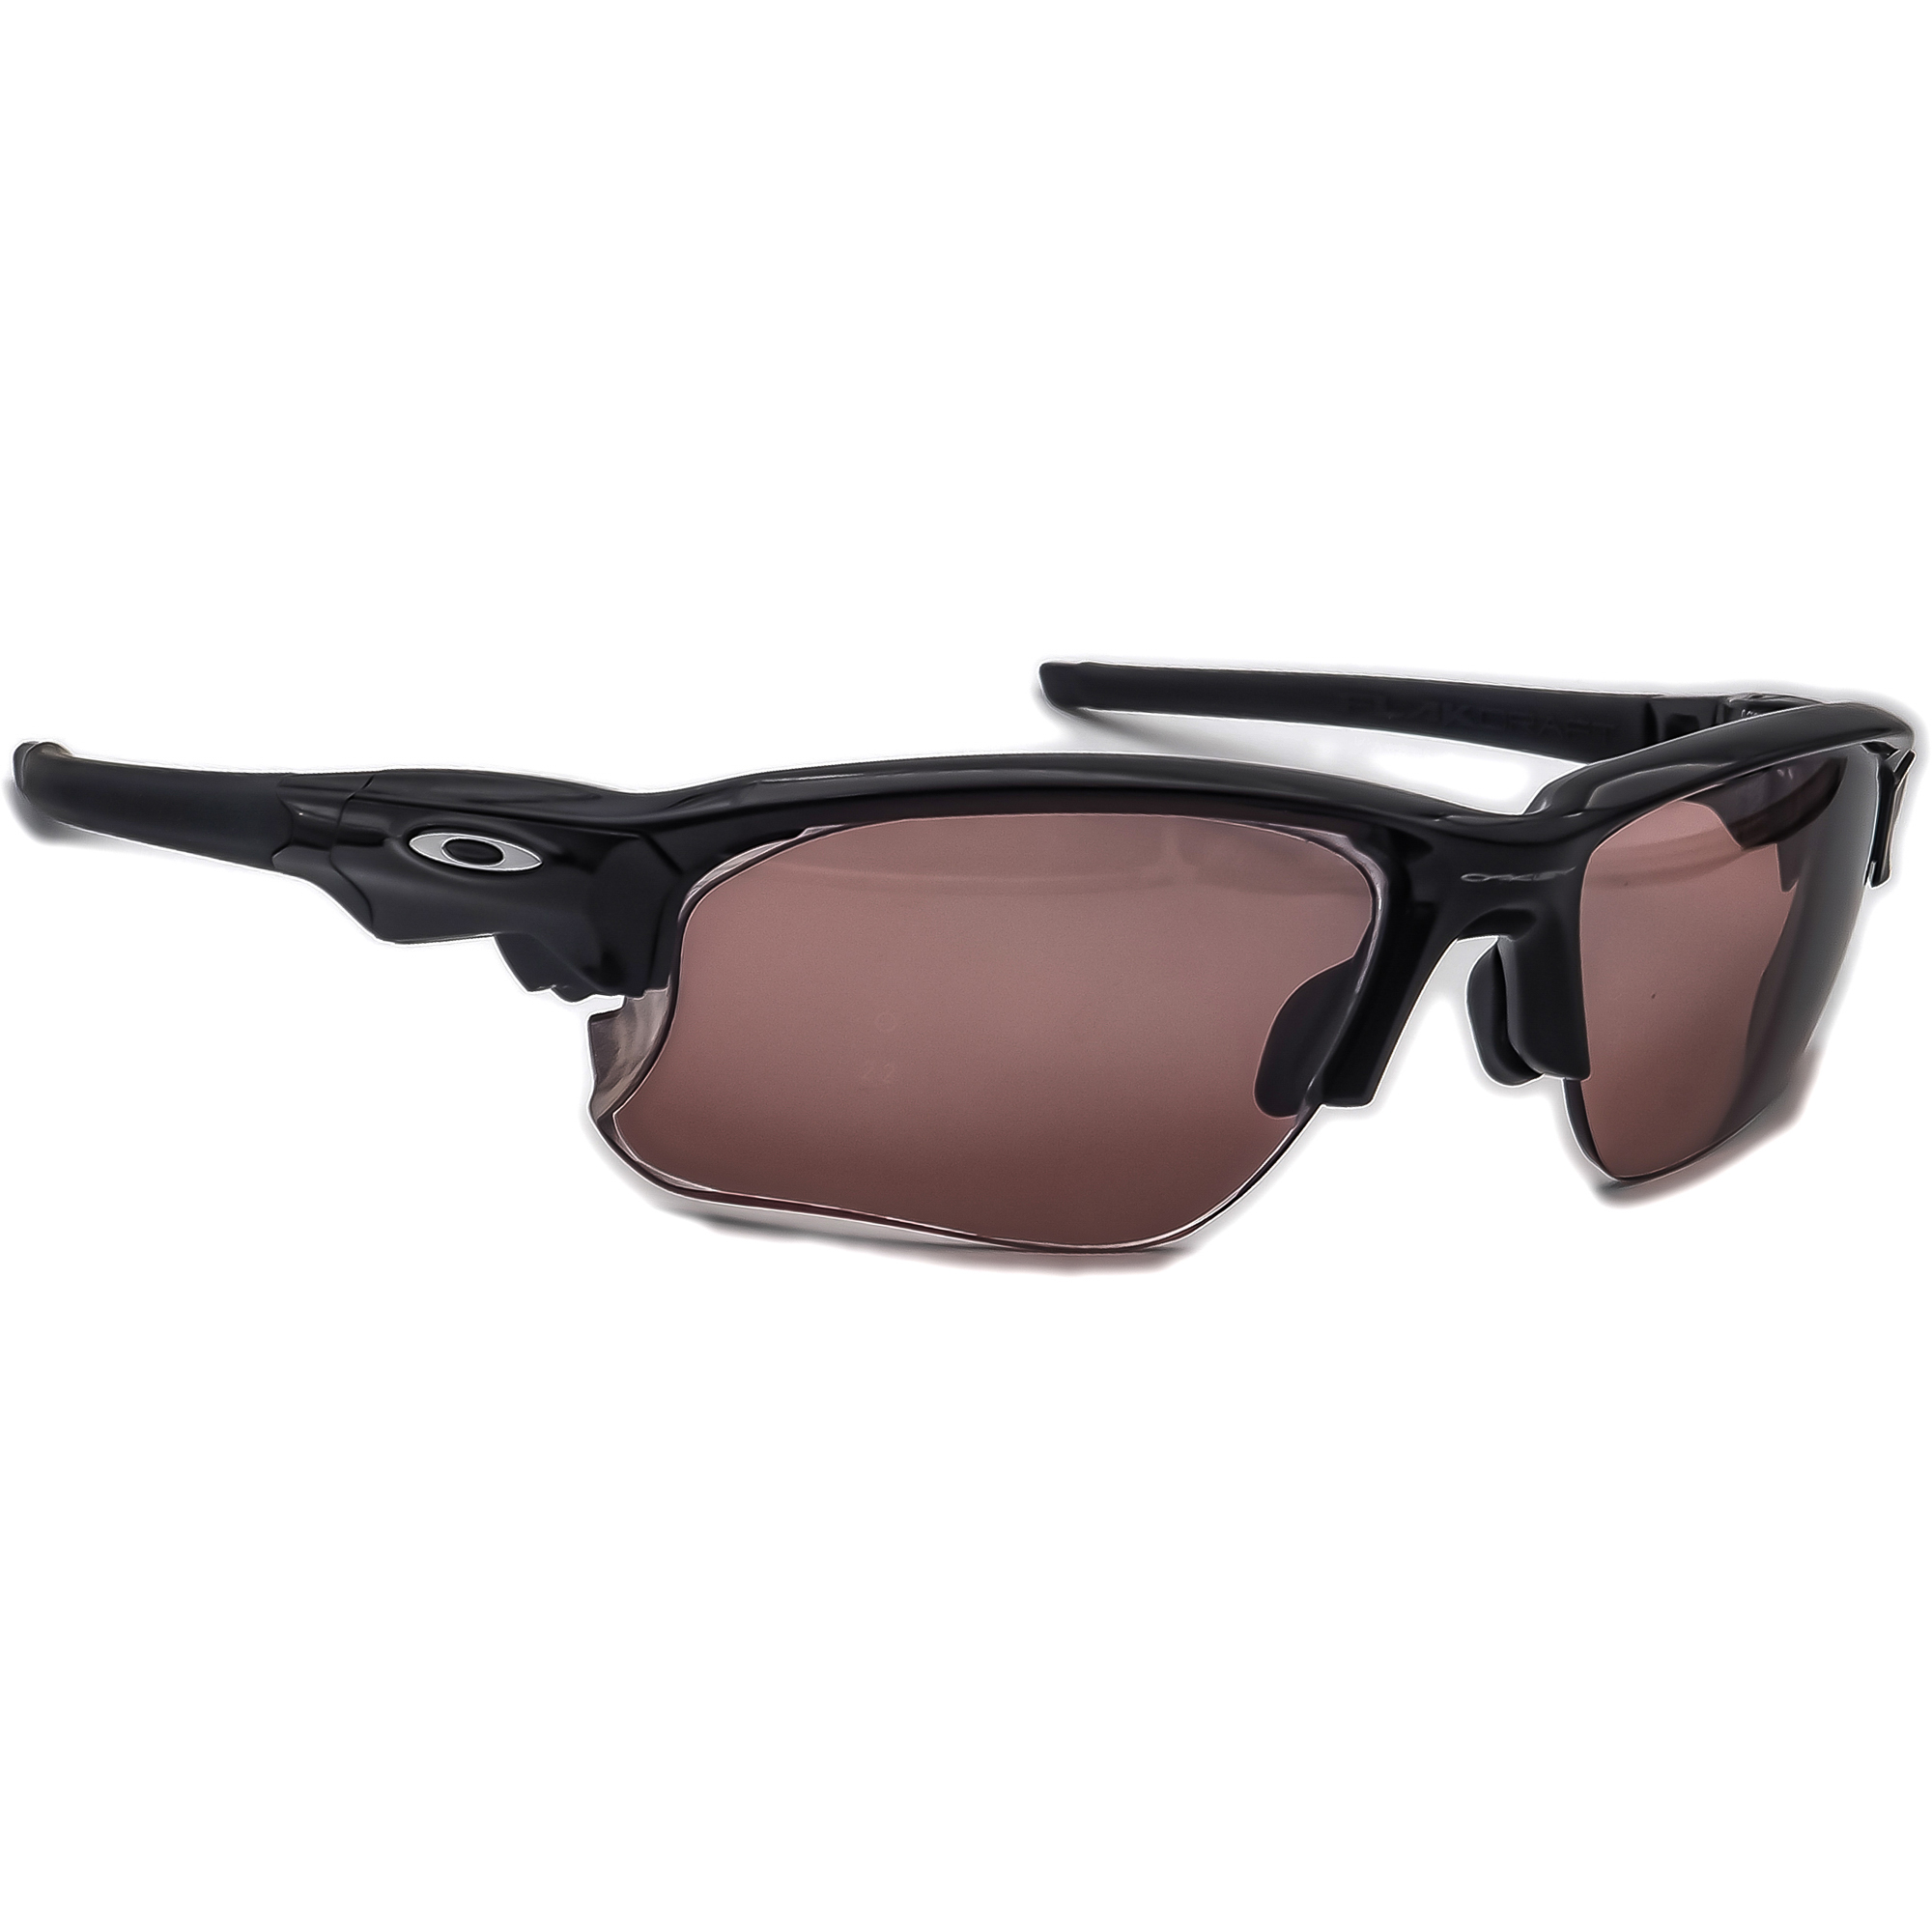 Oakley OO9364-0167 Flak Draft Sunglasses Frame Only